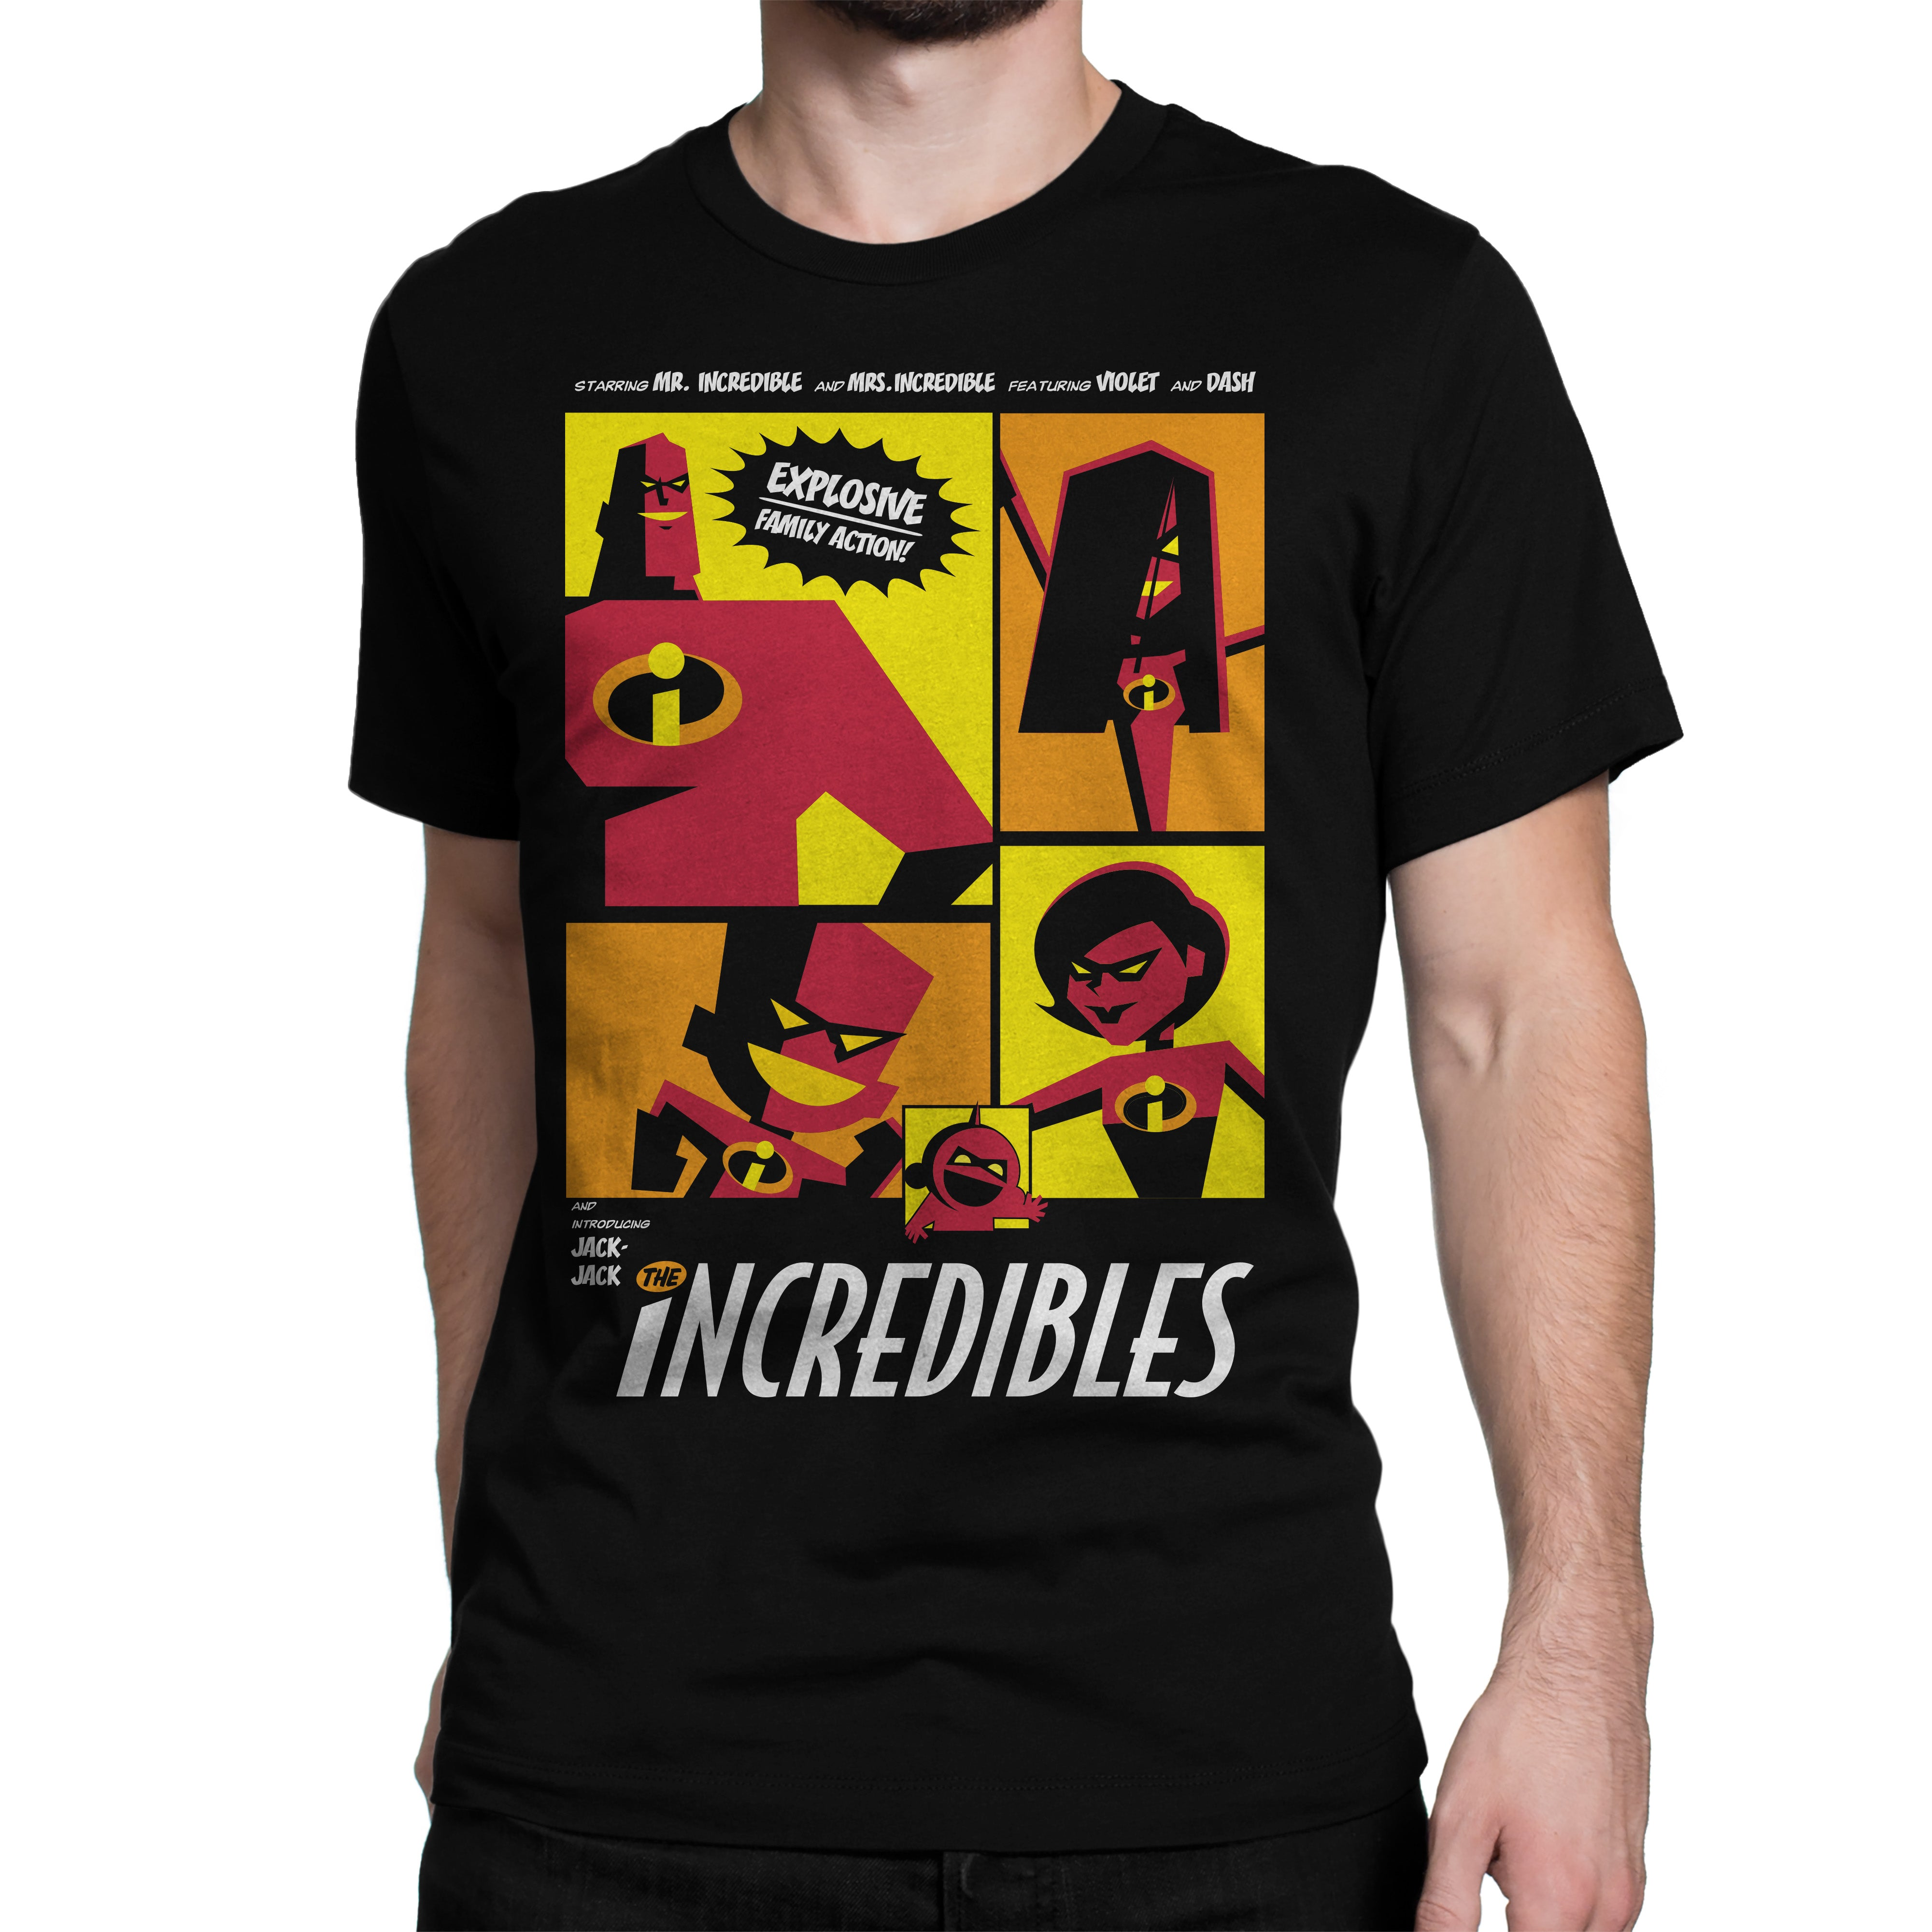 ed7766caf Pop art Poster_incredibles_movie tshirt_in_India_by_silly punter · Pop art  Poster_incredibles_movie tshirt_in_India_by_silly punter